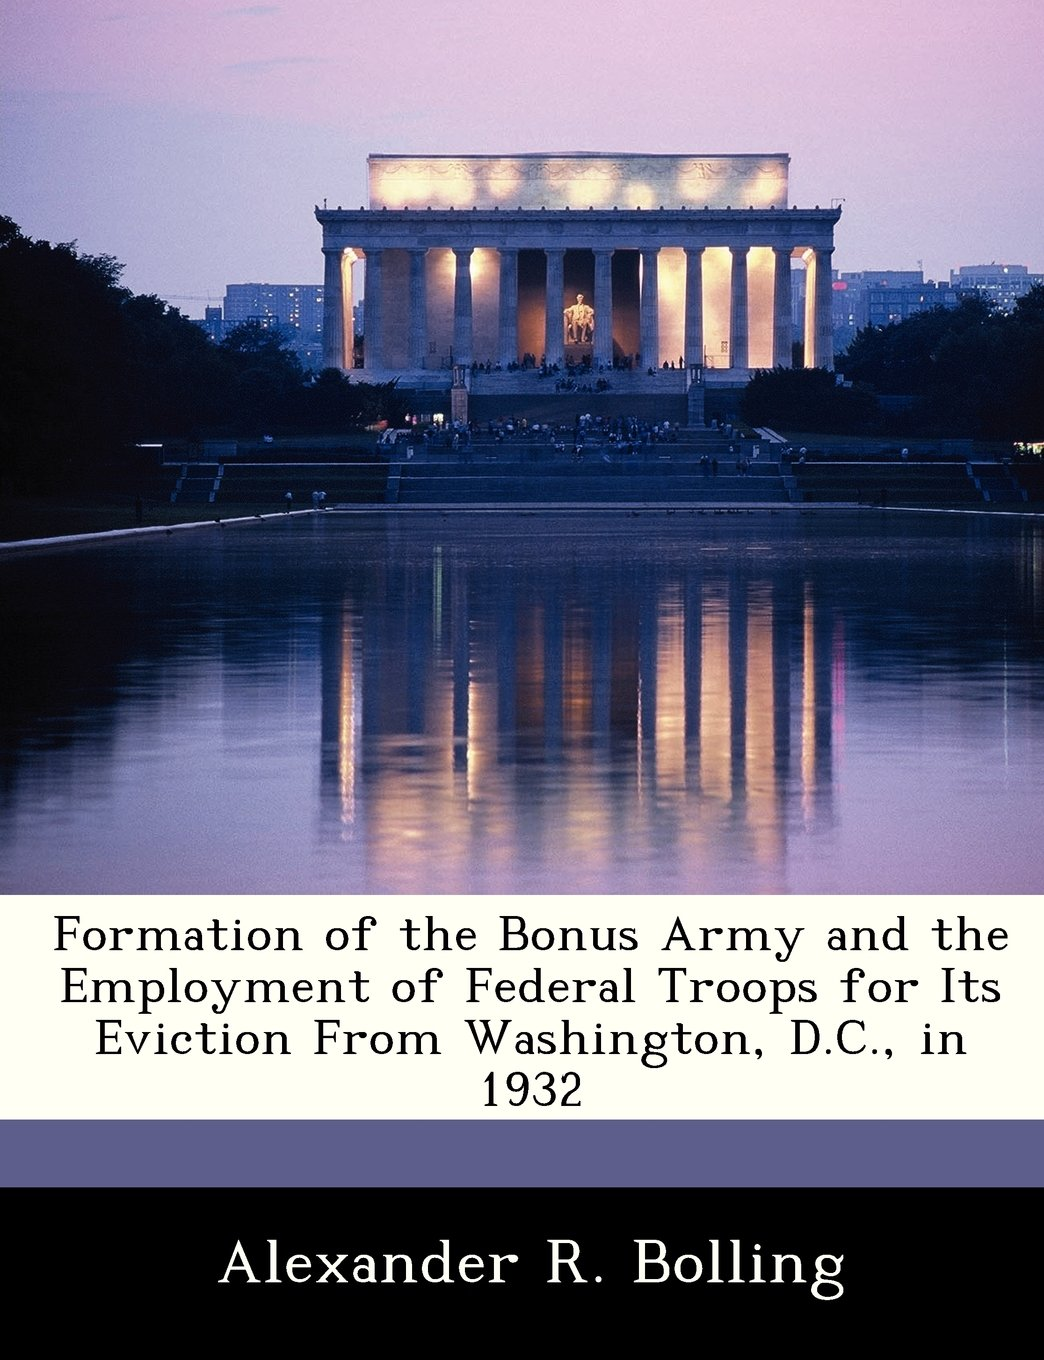 Read Online Formation of the Bonus Army and the Employment of Federal Troops for Its Eviction From Washington, D.C., in 1932 PDF